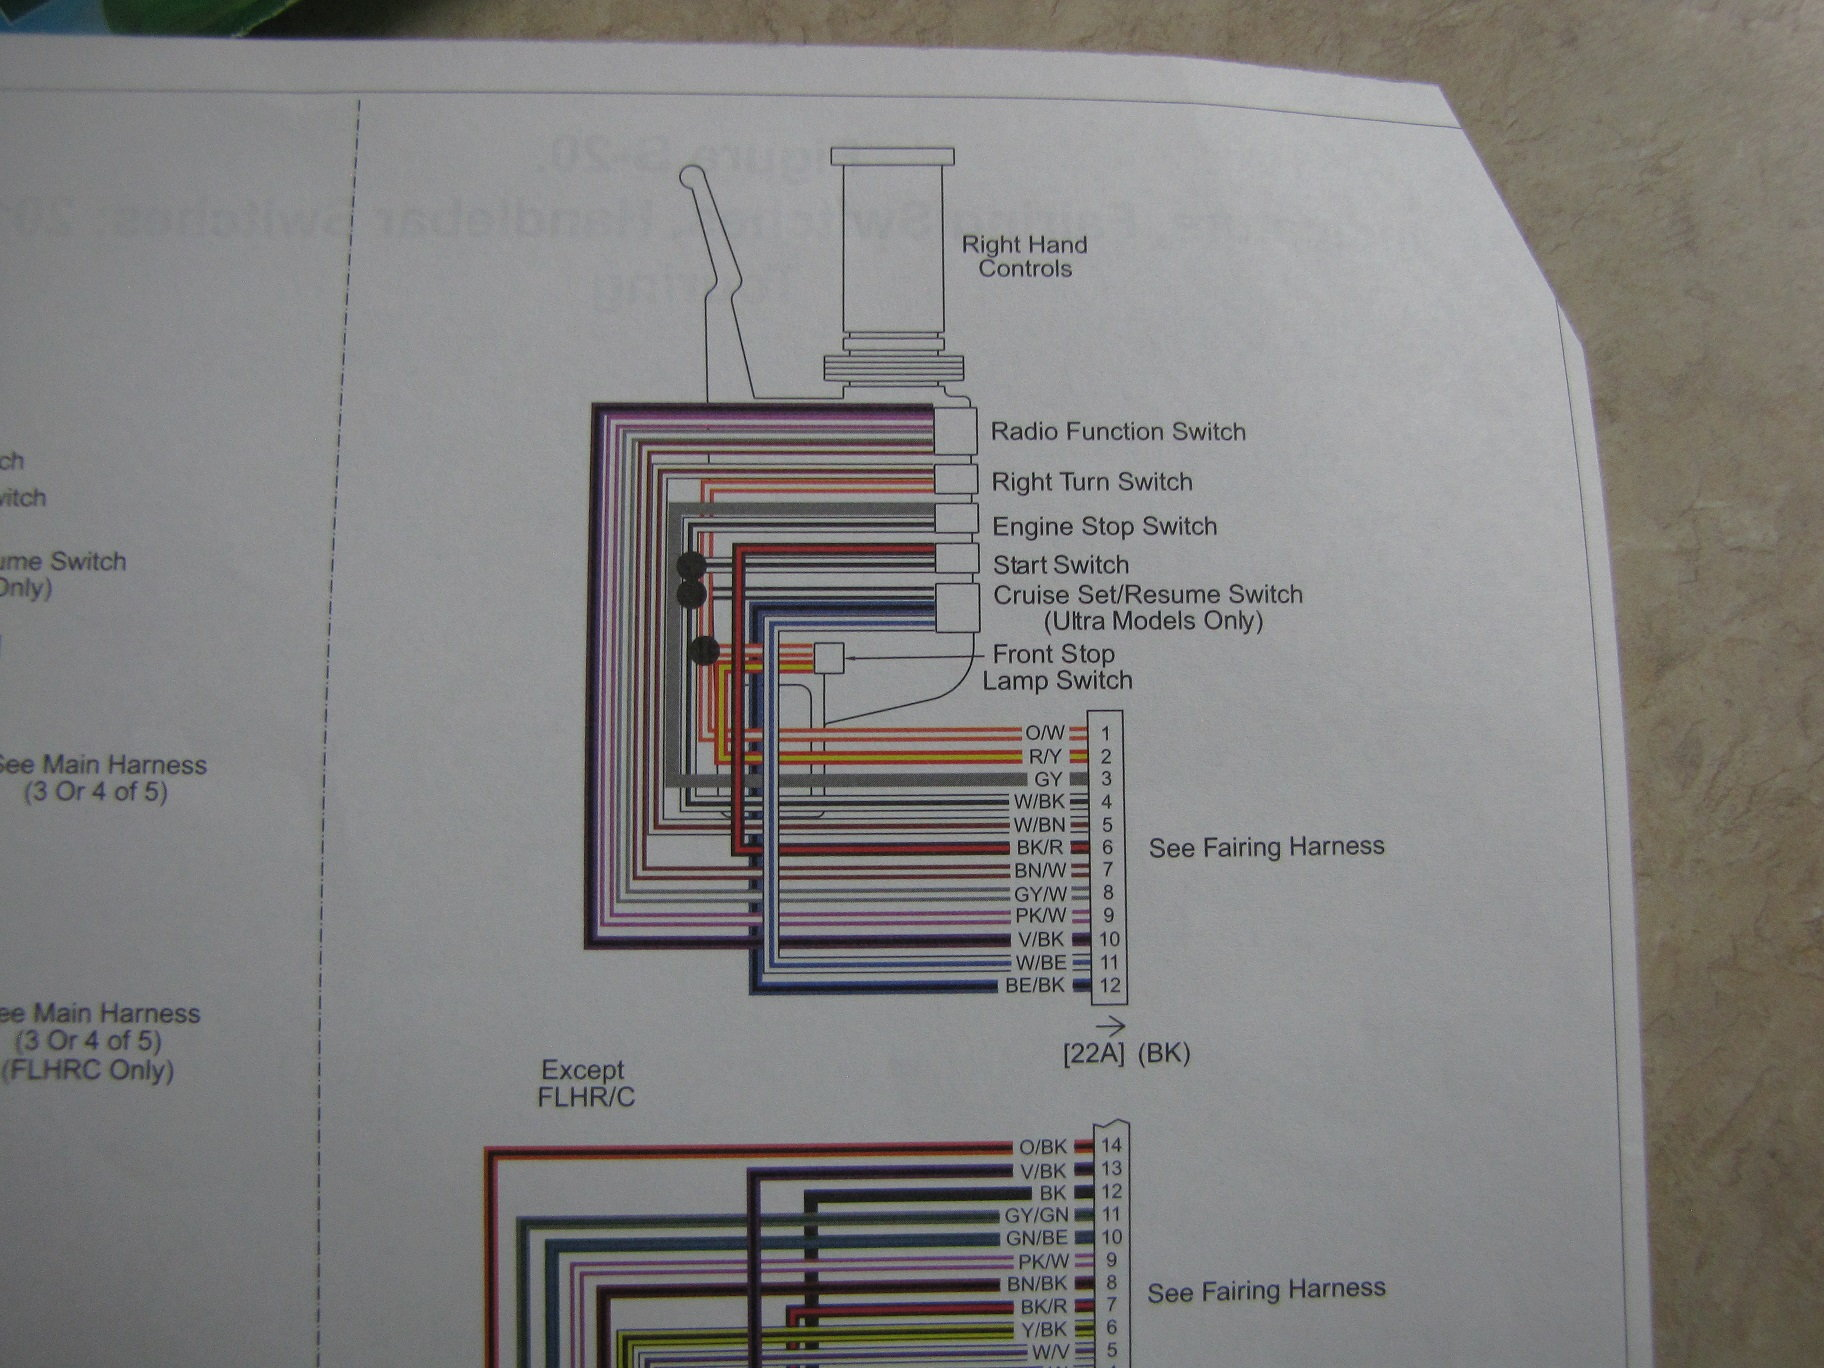 Harley Wiring Diagram 2012 | Wiring Diagram on